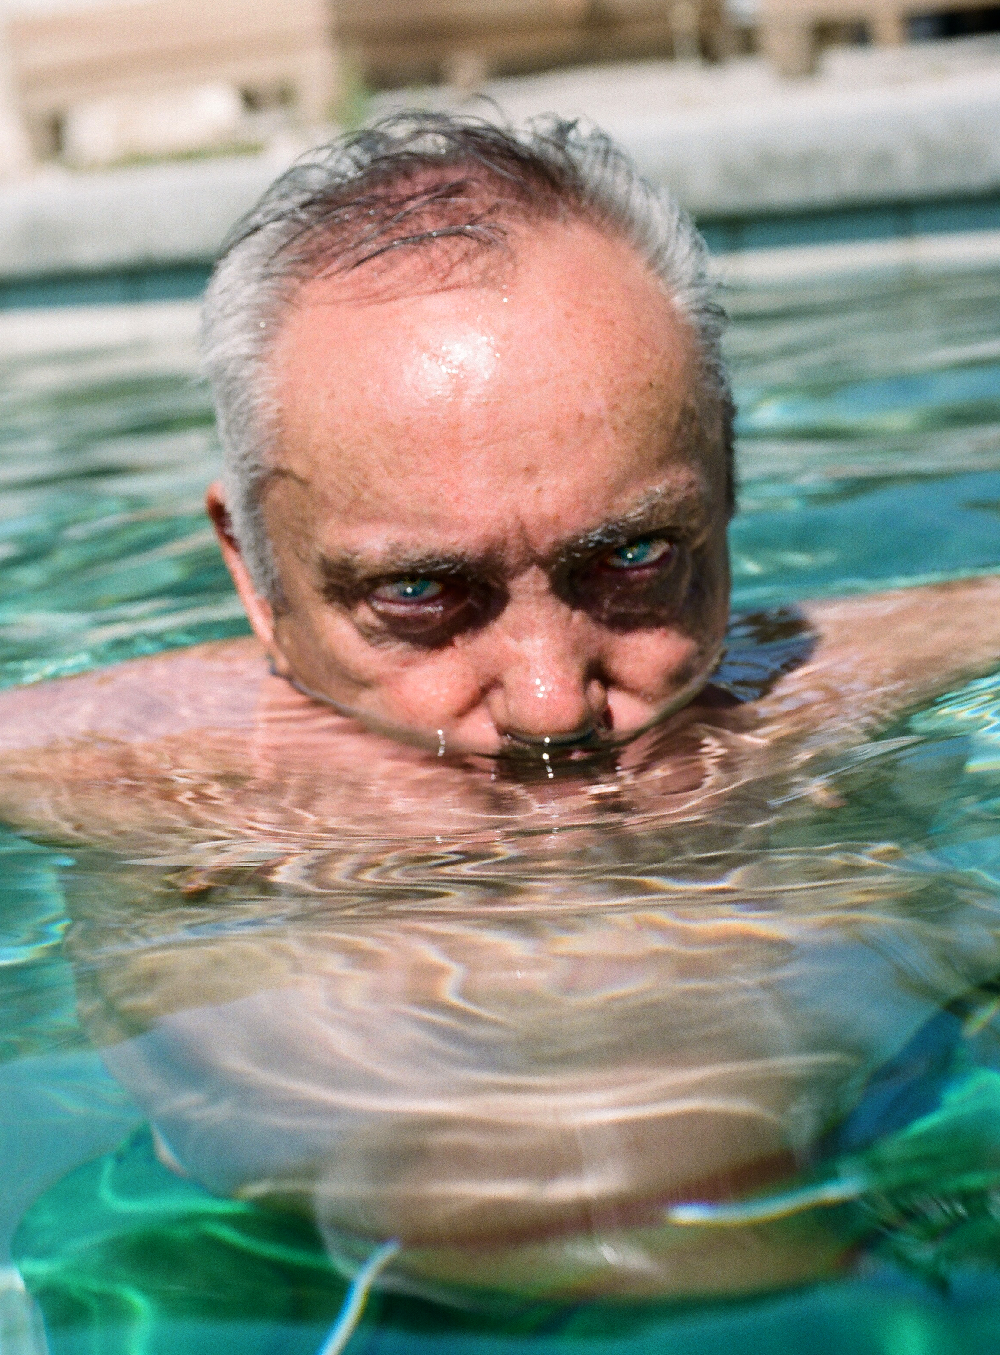 udo-kier-pool-stare.png